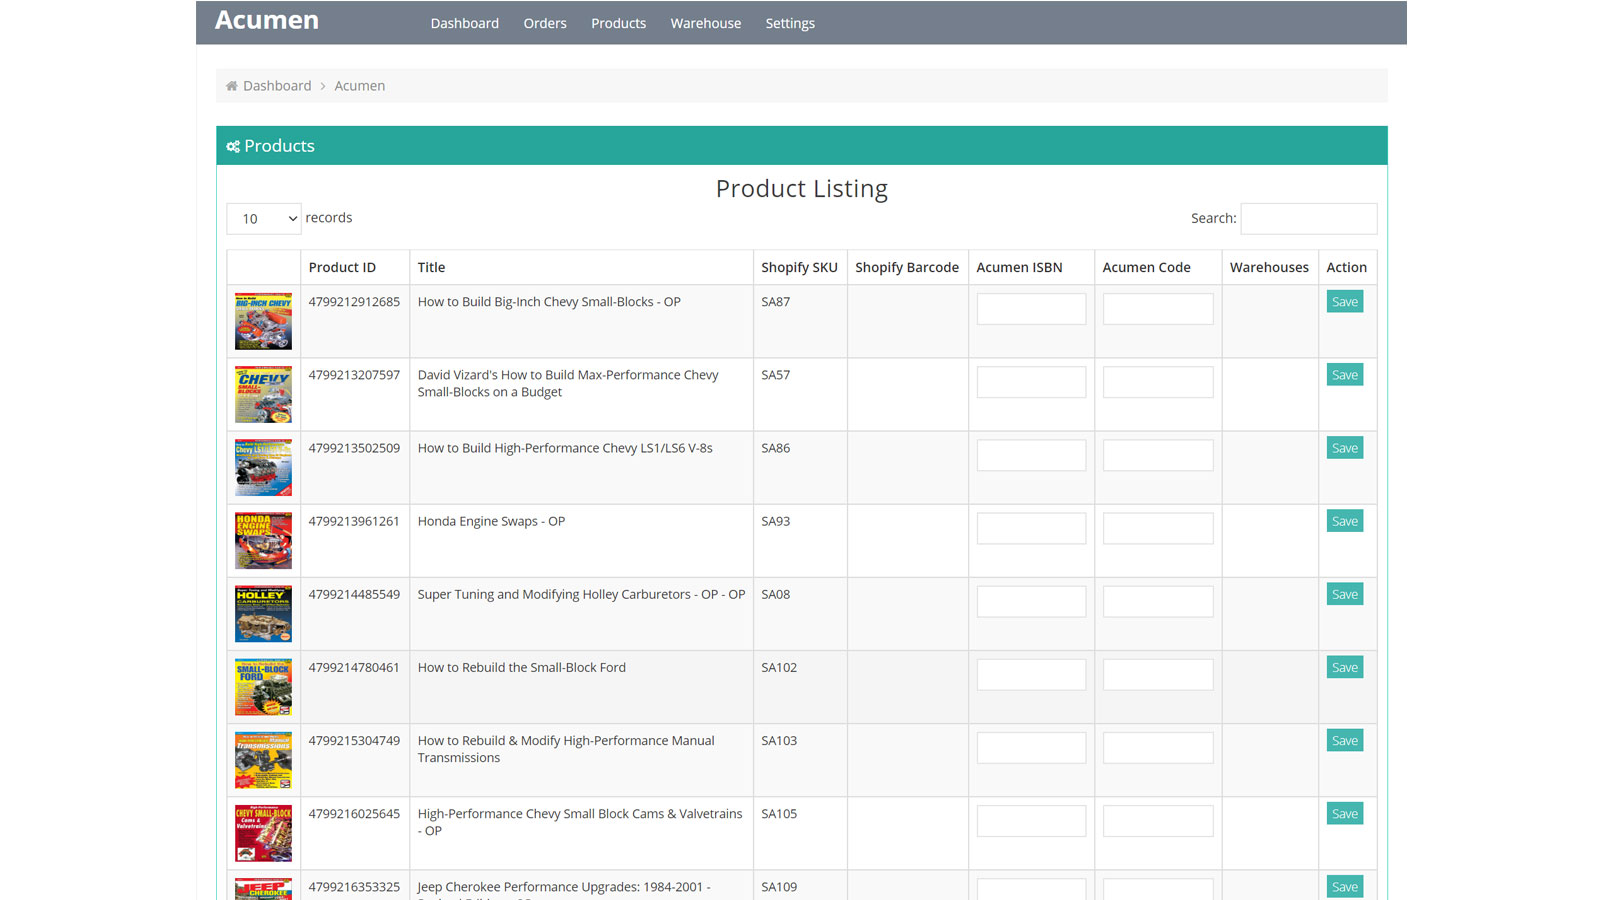 Products listing